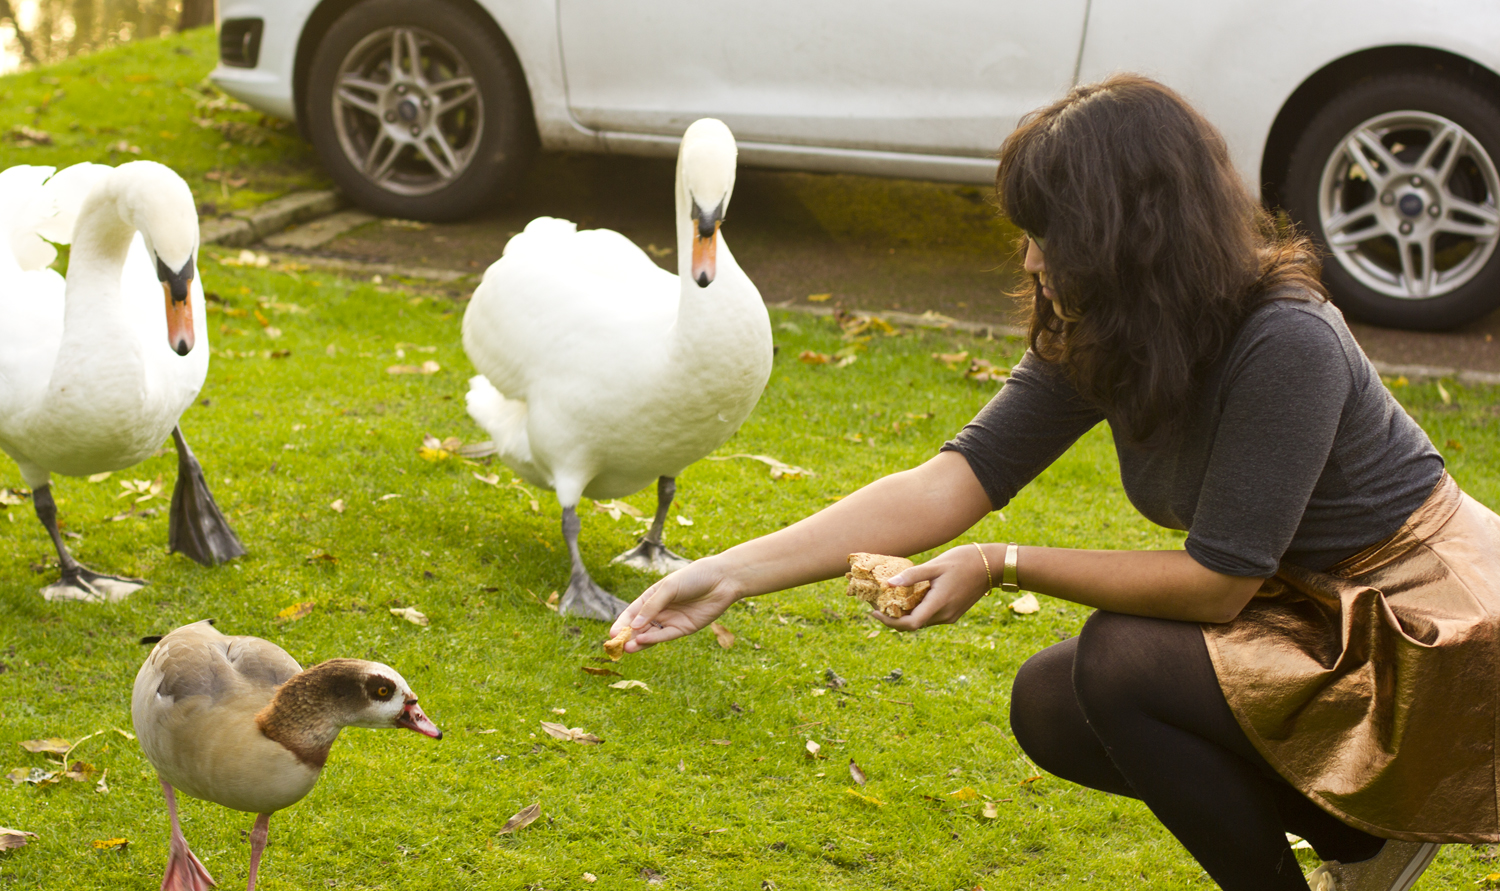 feeding swans girl outside egyptian geese mute swan uk outside exterior surrey green house